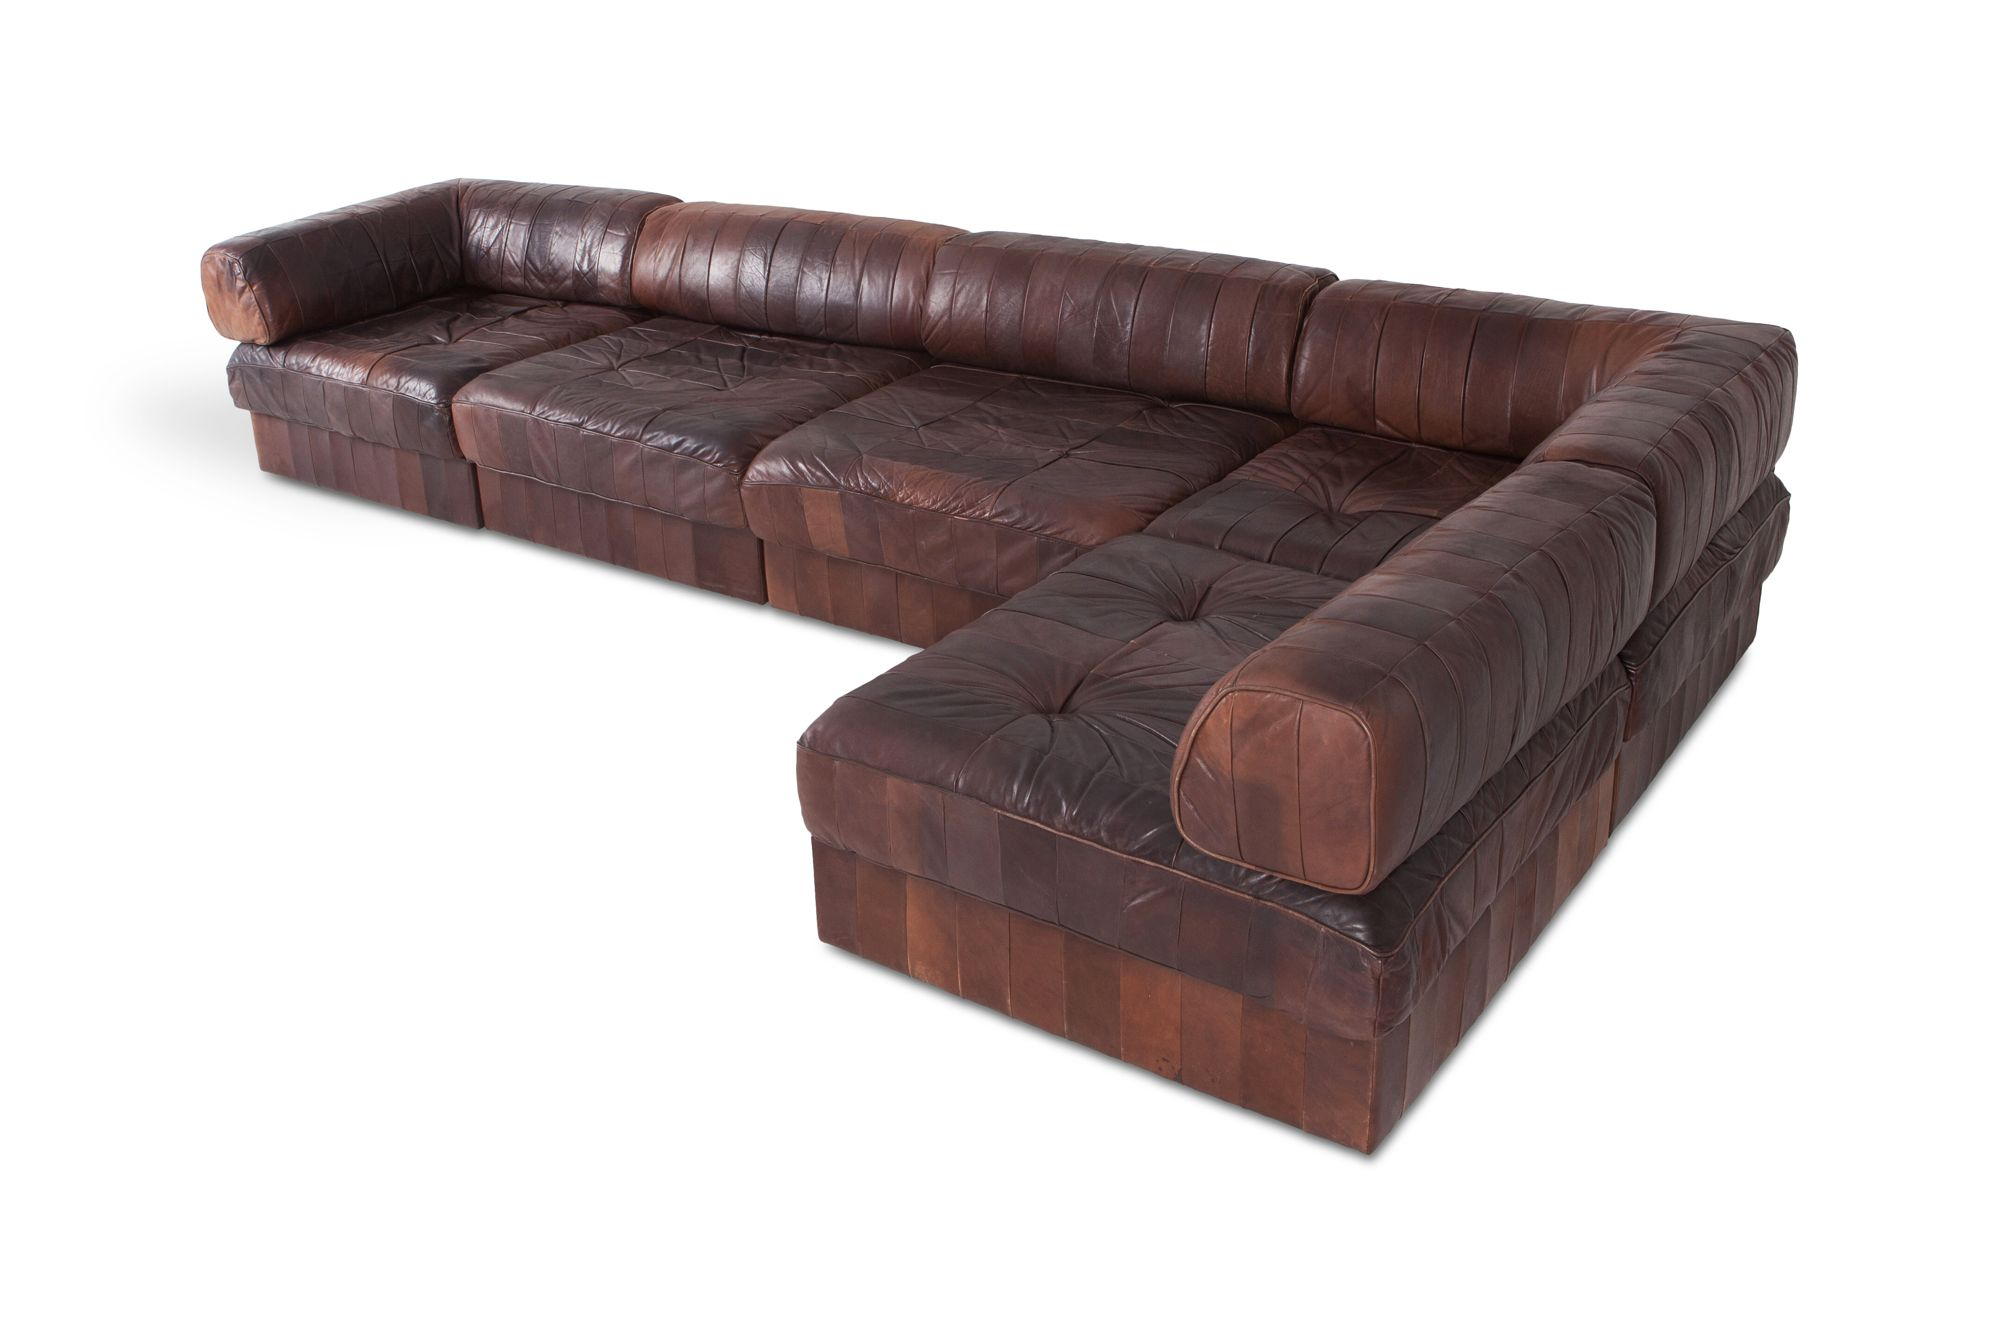 De Sede Patchwork.Vintage Modular Brown Cognac Leather Patchwork Sofa By De Sede